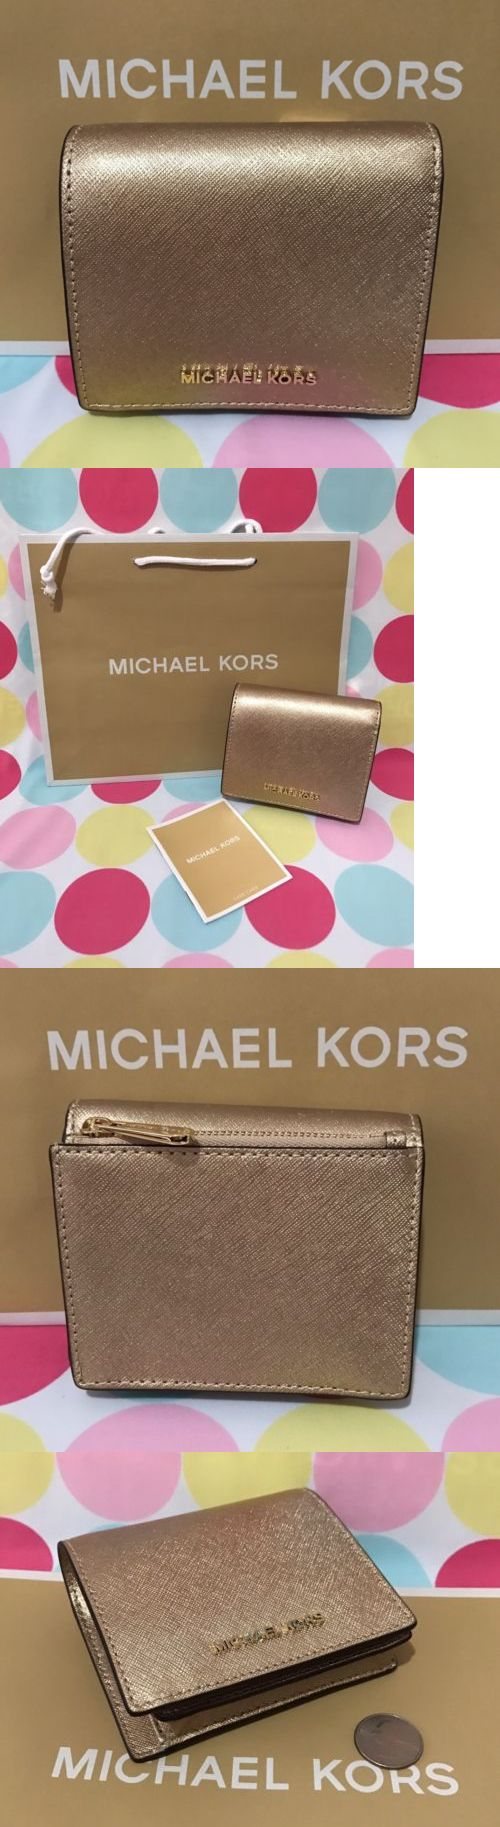 Women Accessories: New Michael Kors Jet Set Travel Carryall Card Case Leather Wallet In Pale Gold -> BUY IT NOW ONLY: $58.88 on eBay!